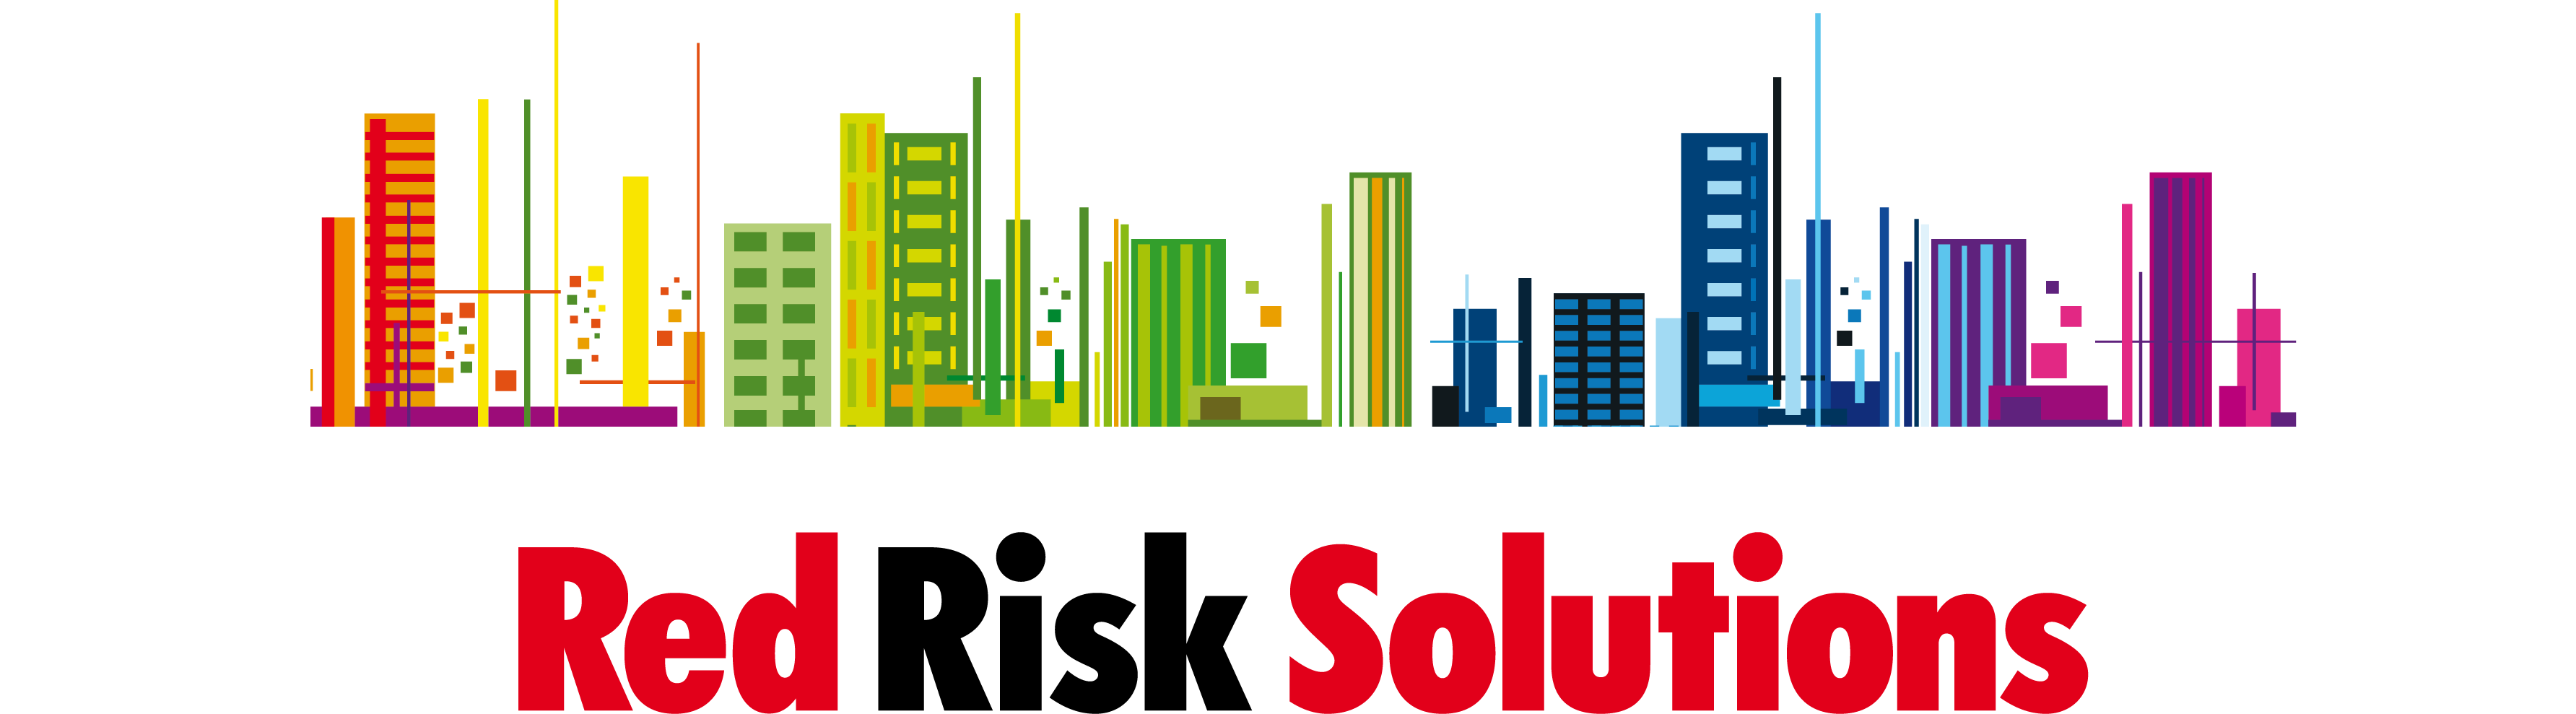 Red Risk Solutions designd by